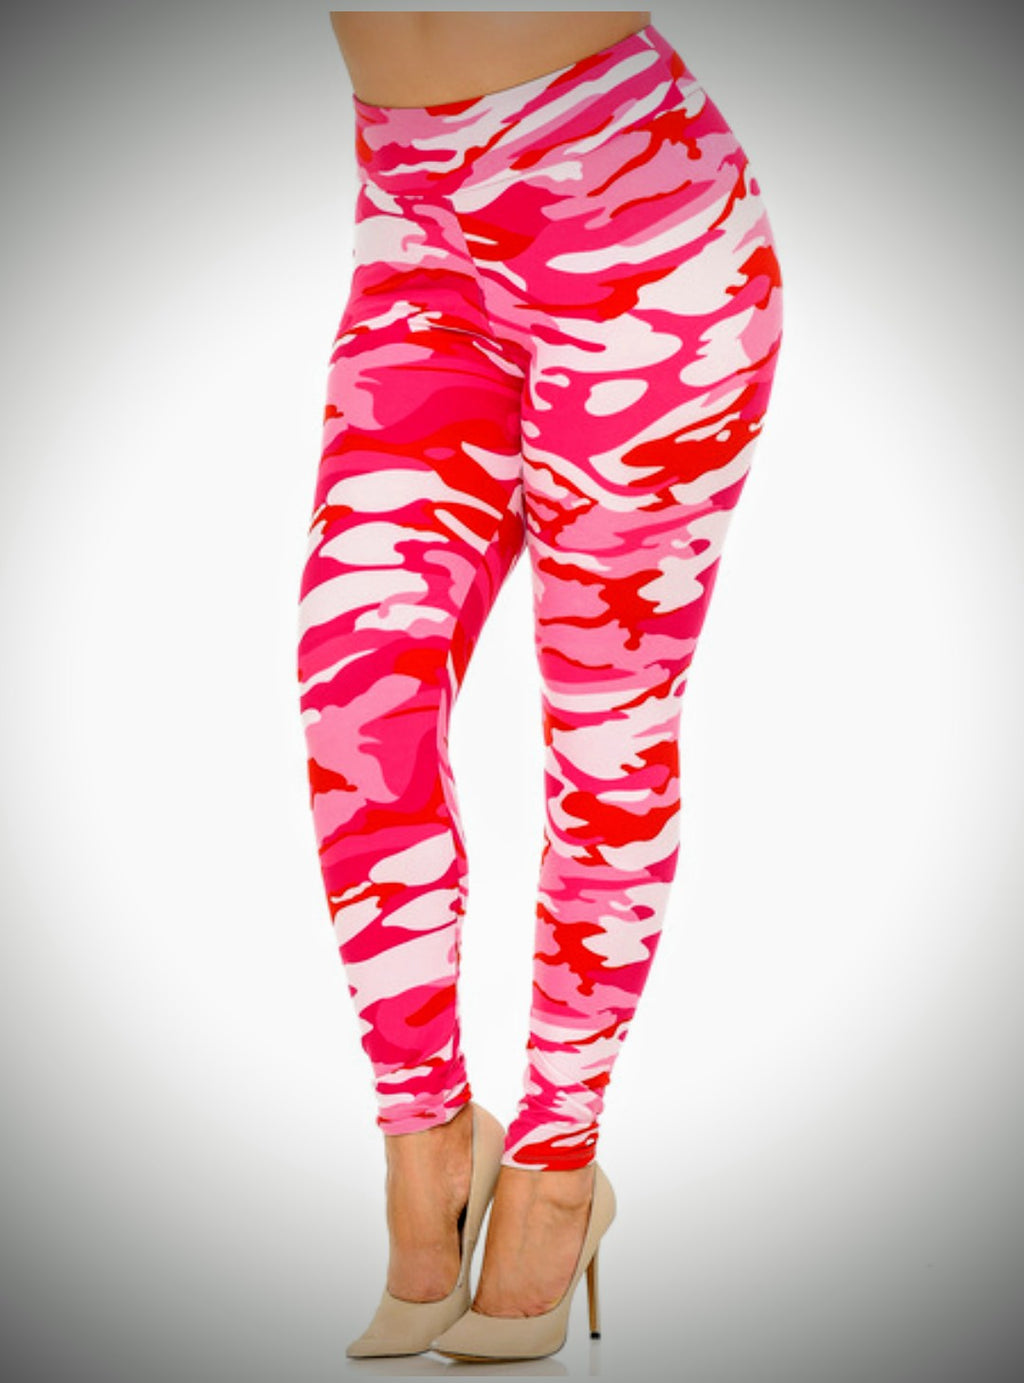 Buttercream soft leggings pink camo